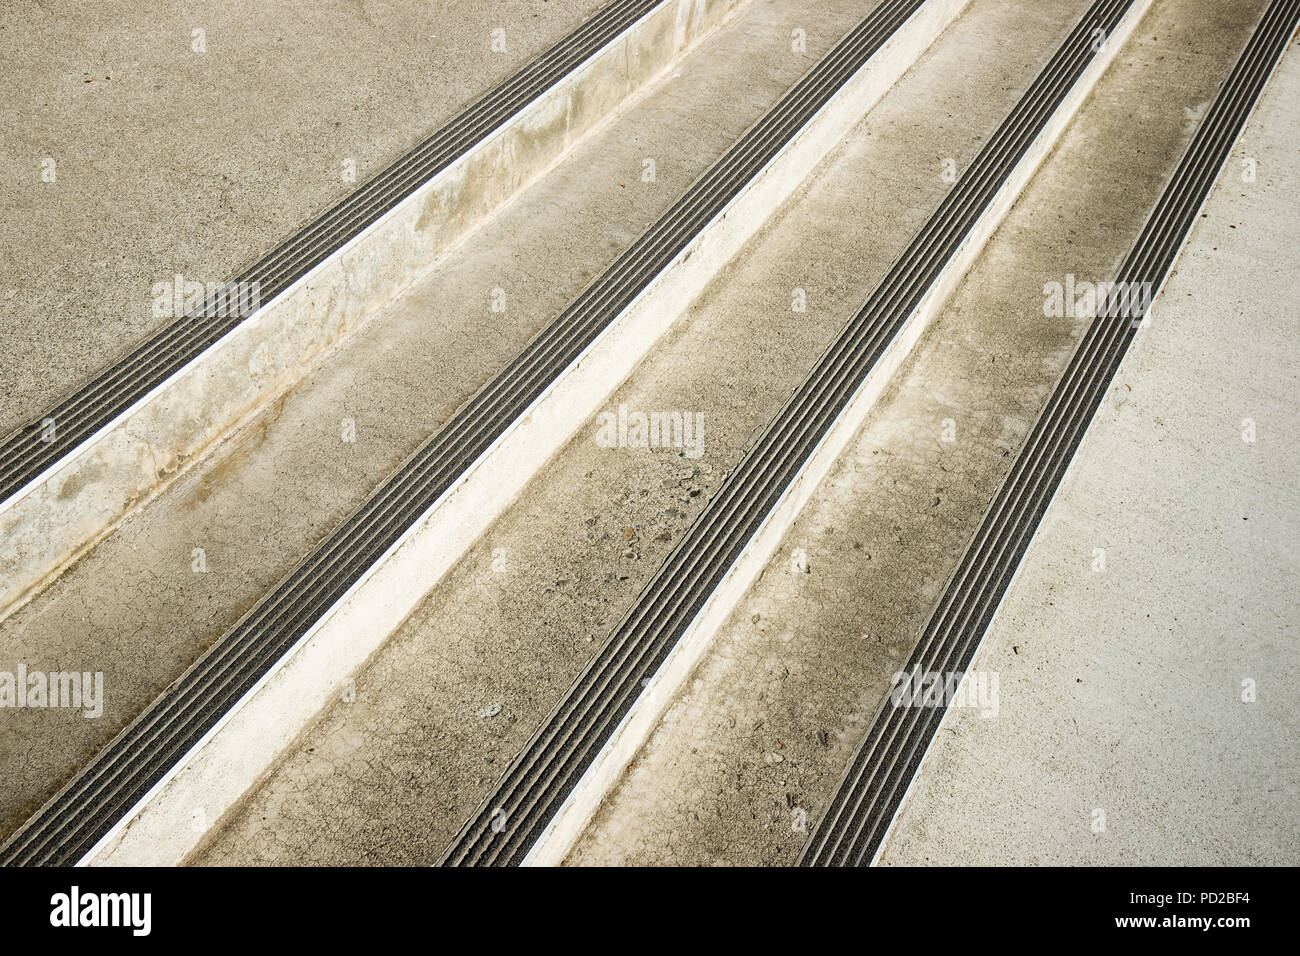 Cement stairs with non-slip extruded aluminum stair nosings for safety and grip. - Stock Image